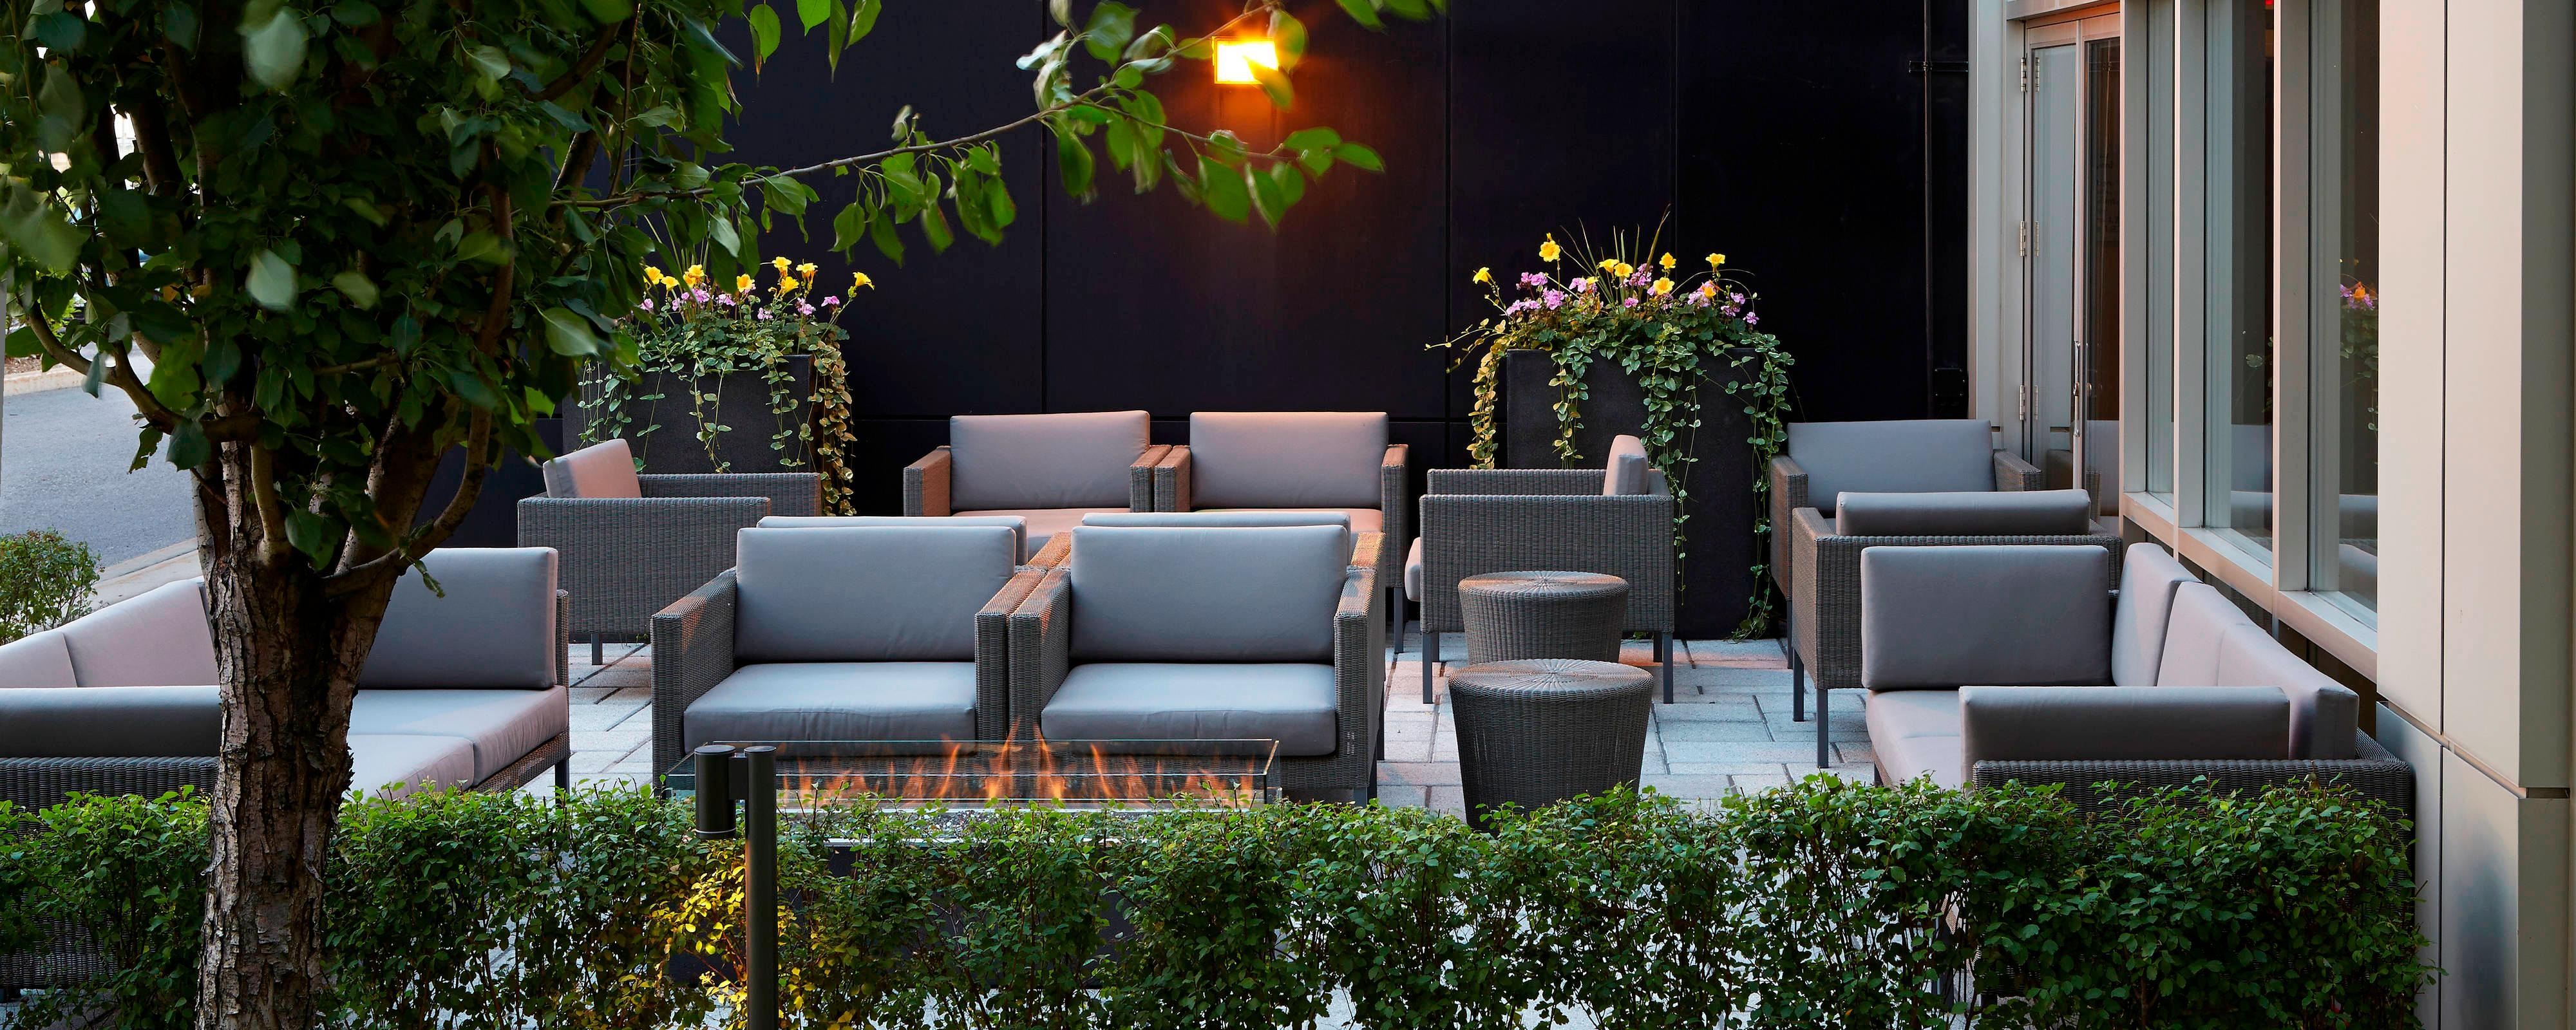 Montreal Airport hotel outdoor terrace